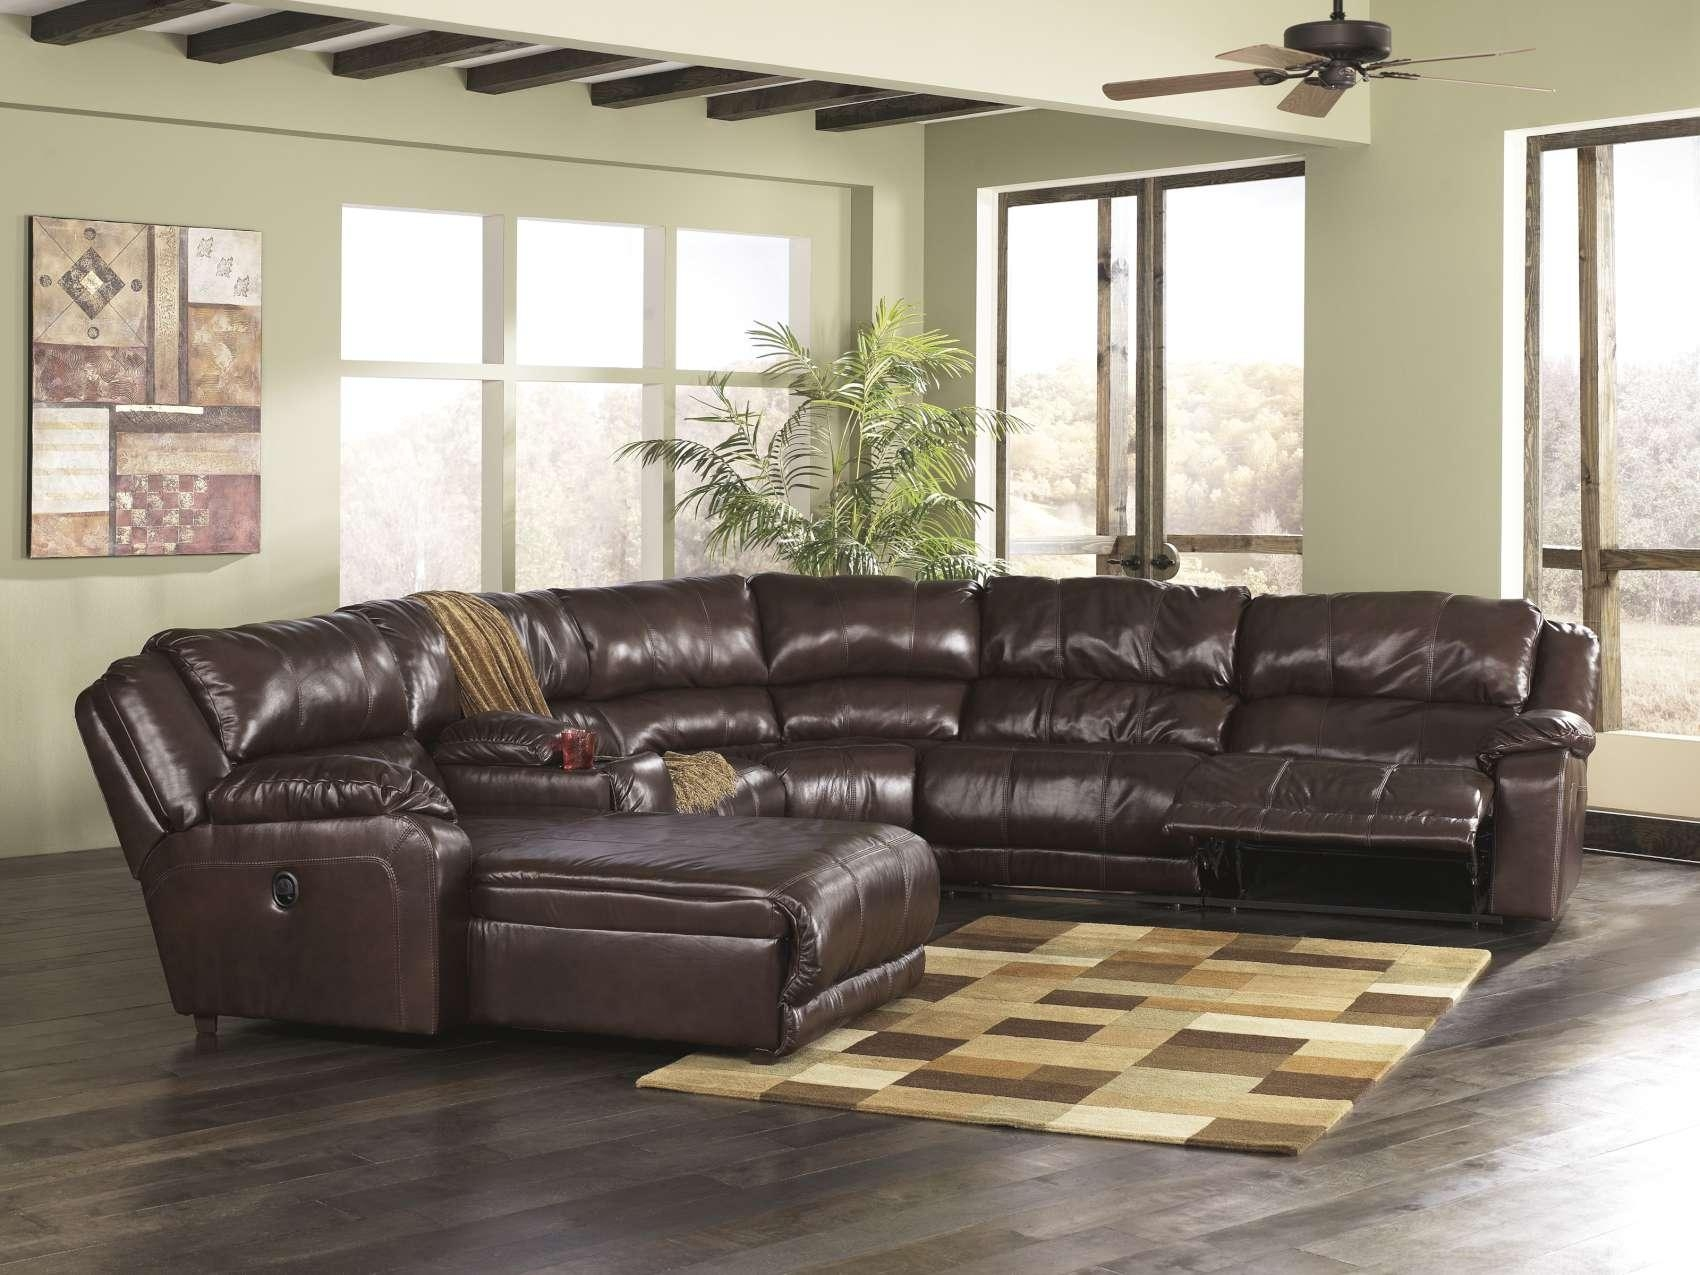 Braxton Laf Zero Wall Recliner (9780040) Inside Braxton Sectional Sofa (Image 2 of 15)